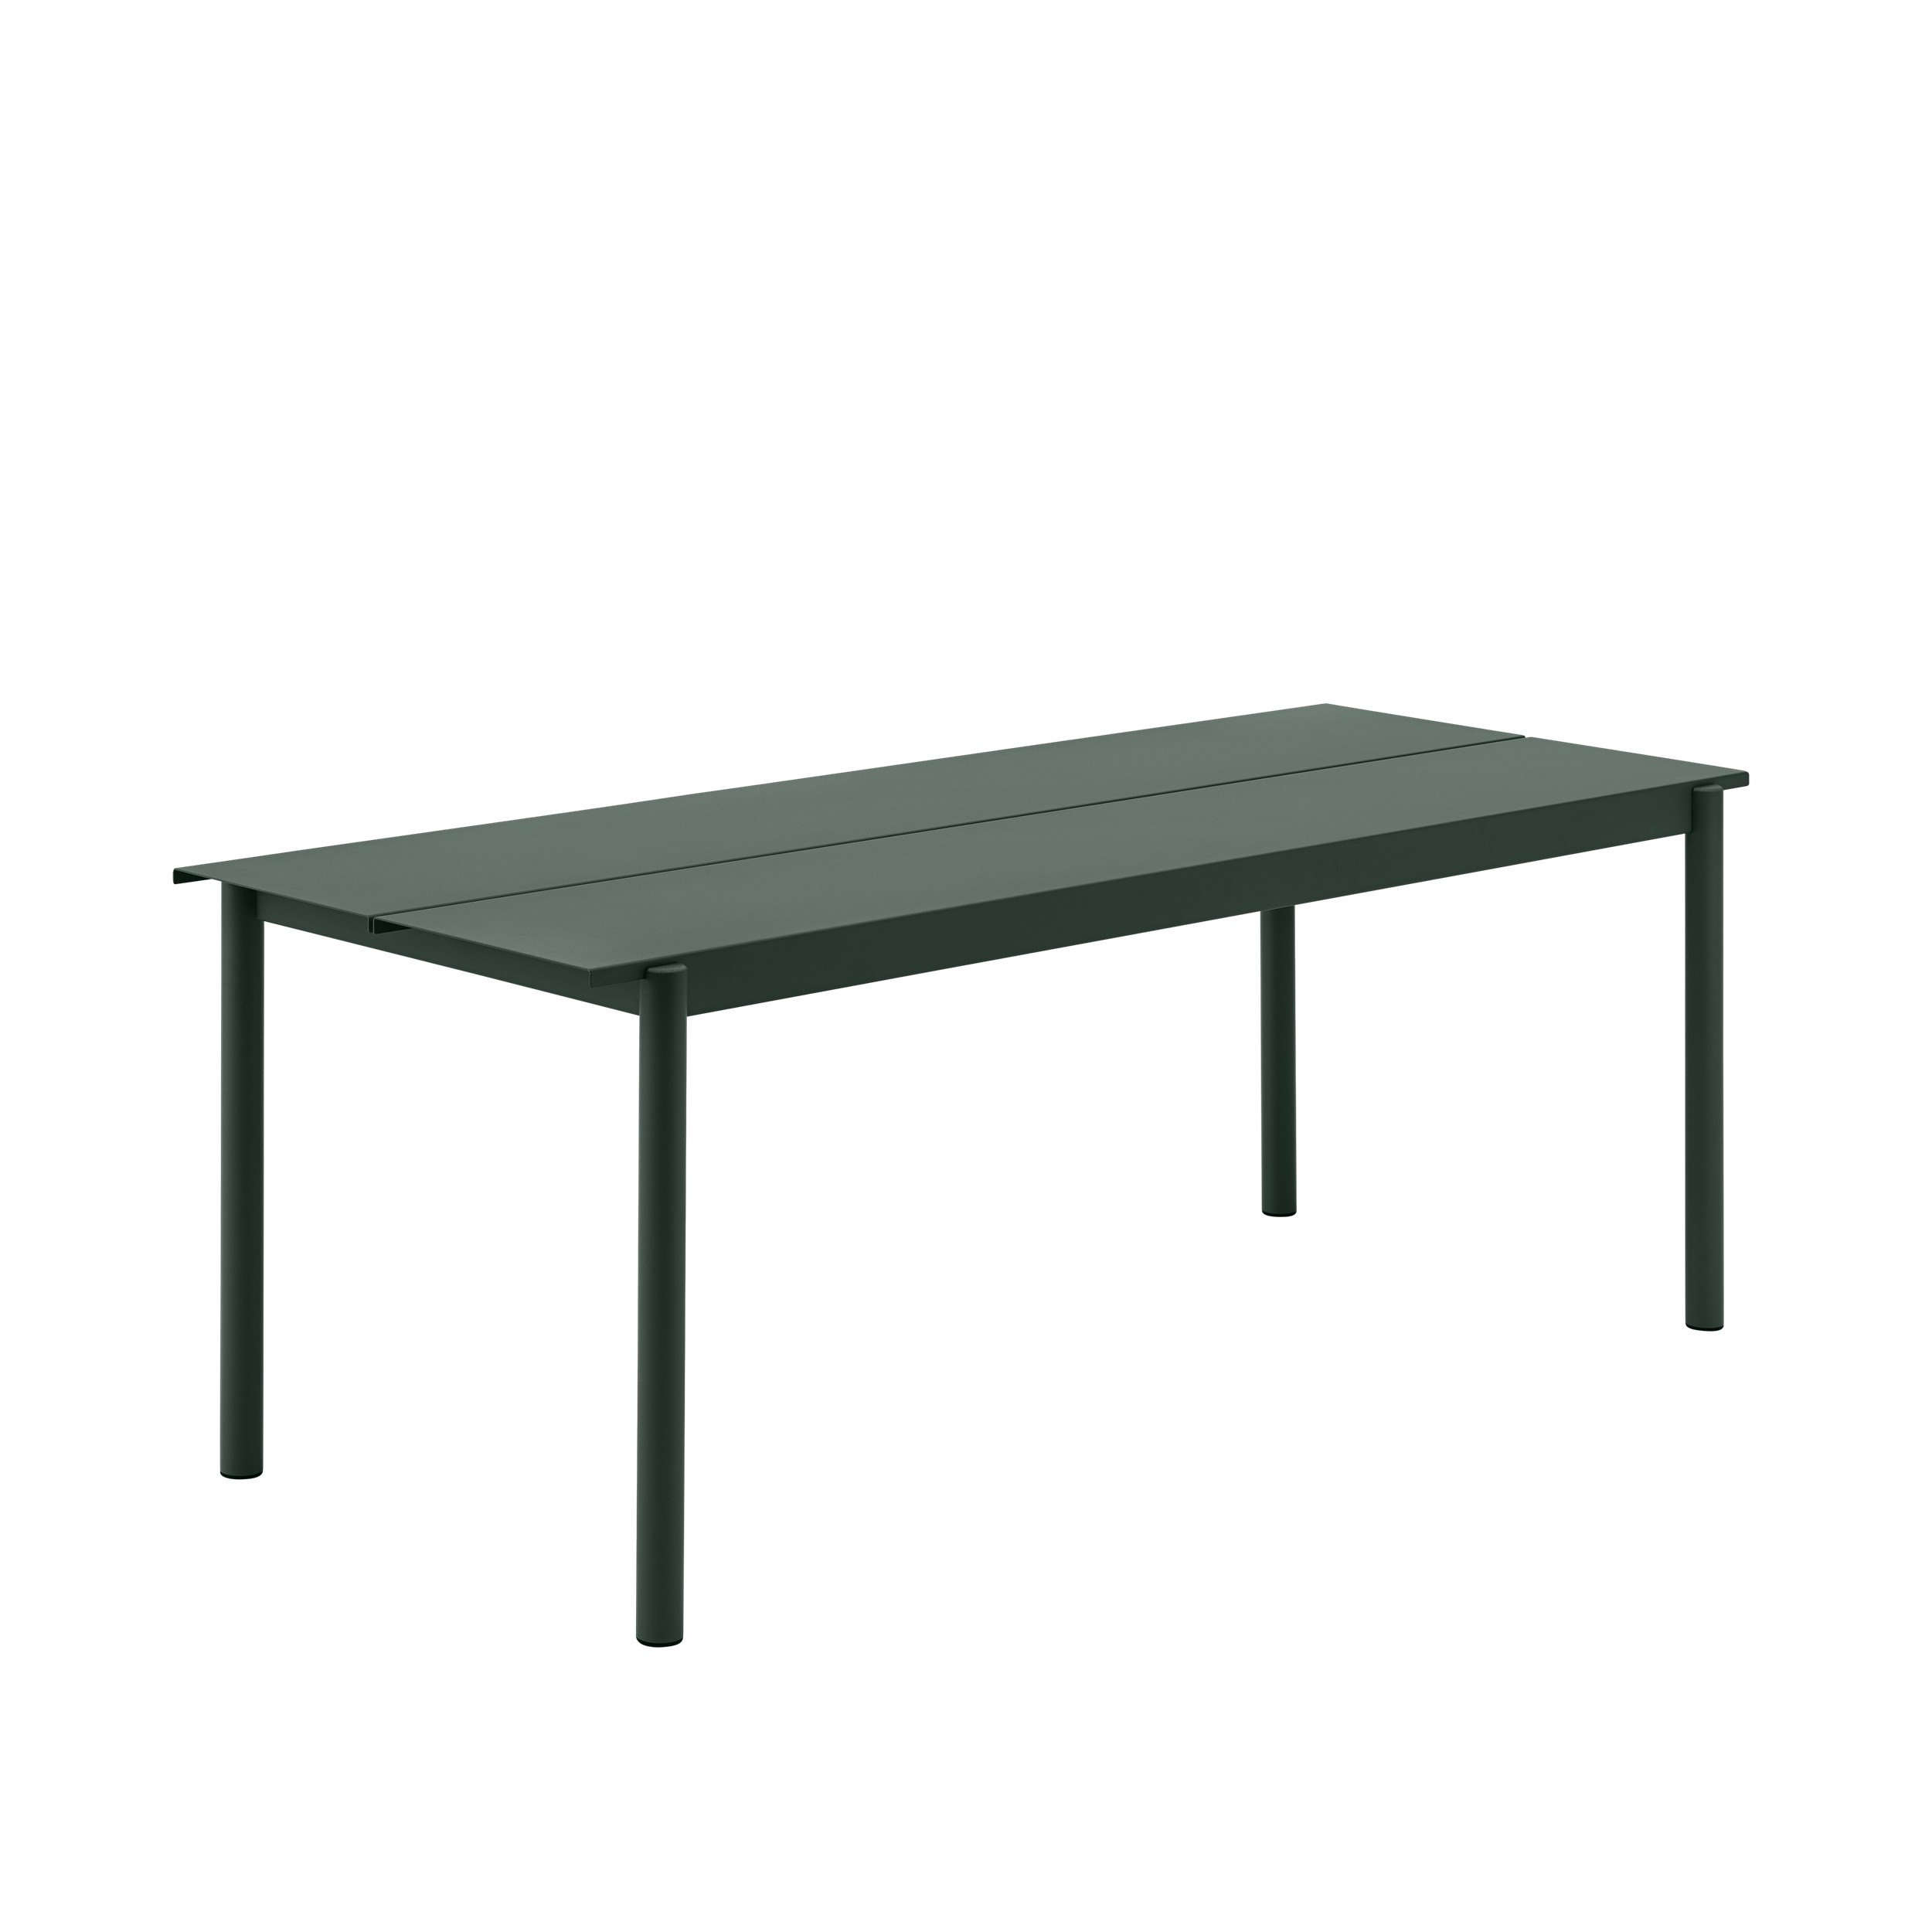 Muuto Linear Steel Table 200 Dark Green